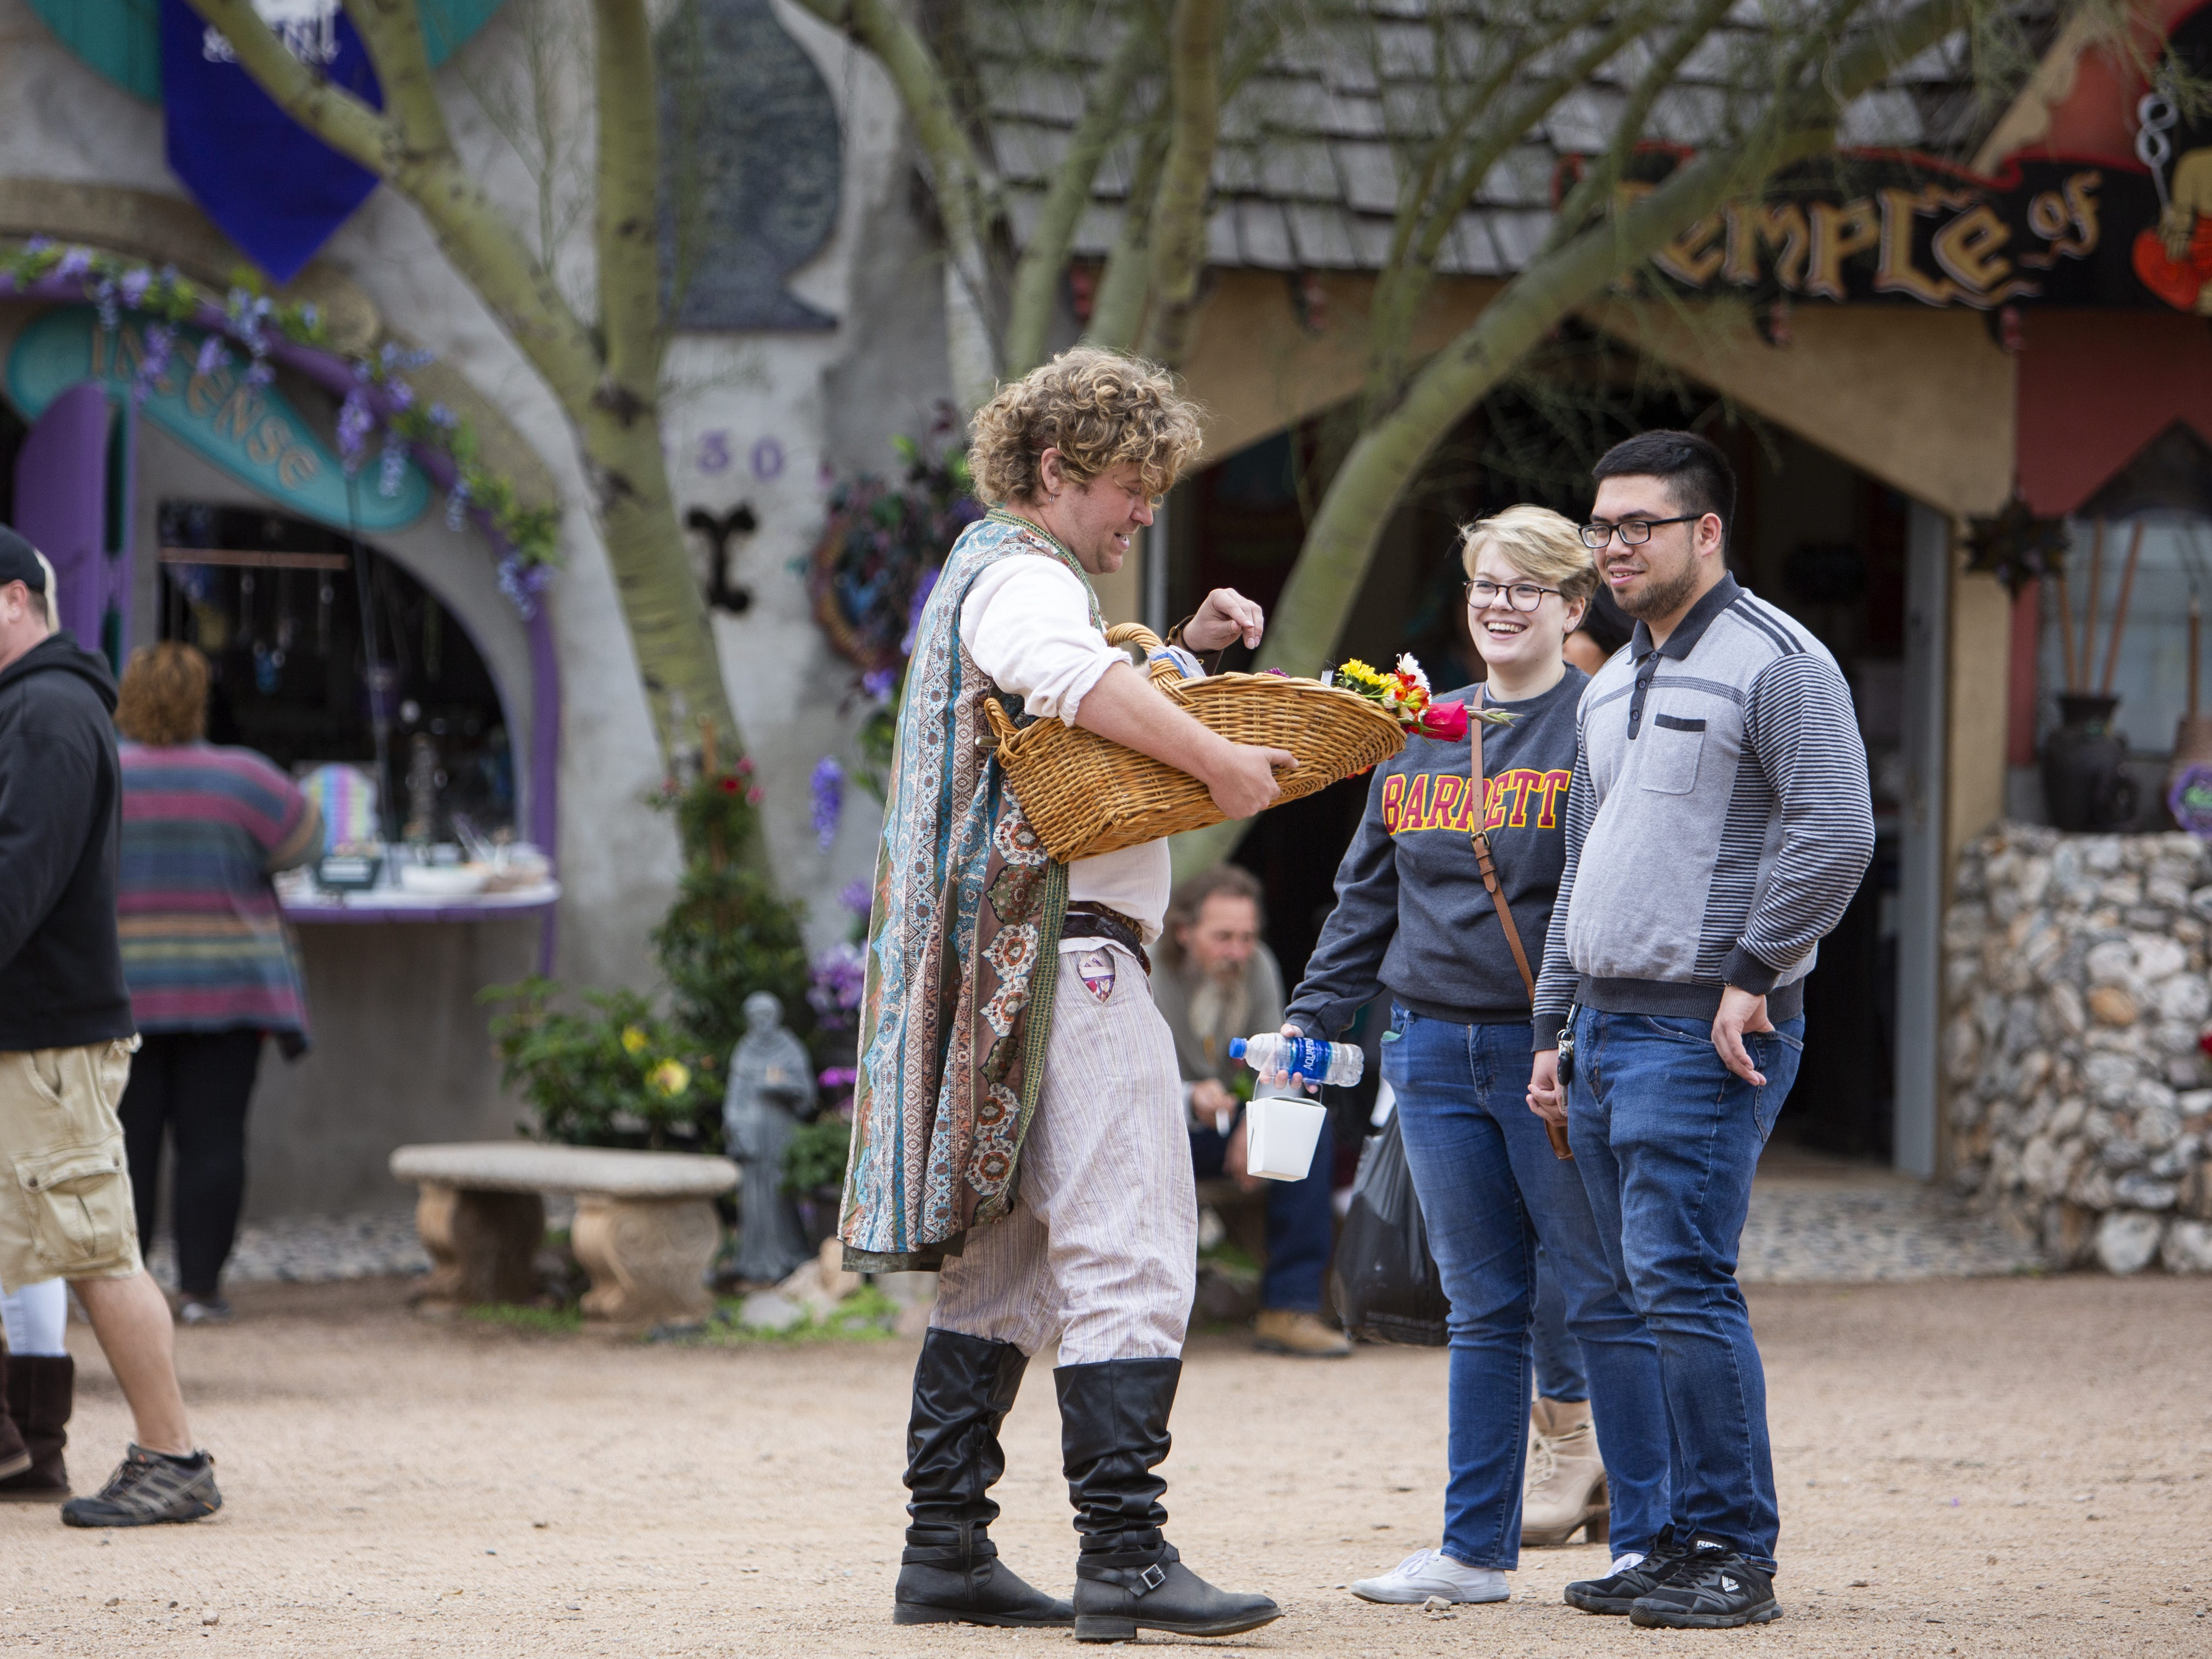 Ryan Pale, left, sells flowers to Elizabeth Carnesi and Johnny Huson, right, at the Arizona Renaissance Festival 2019 on Feb. 9, 2019 in Gold Canyon, Ariz.